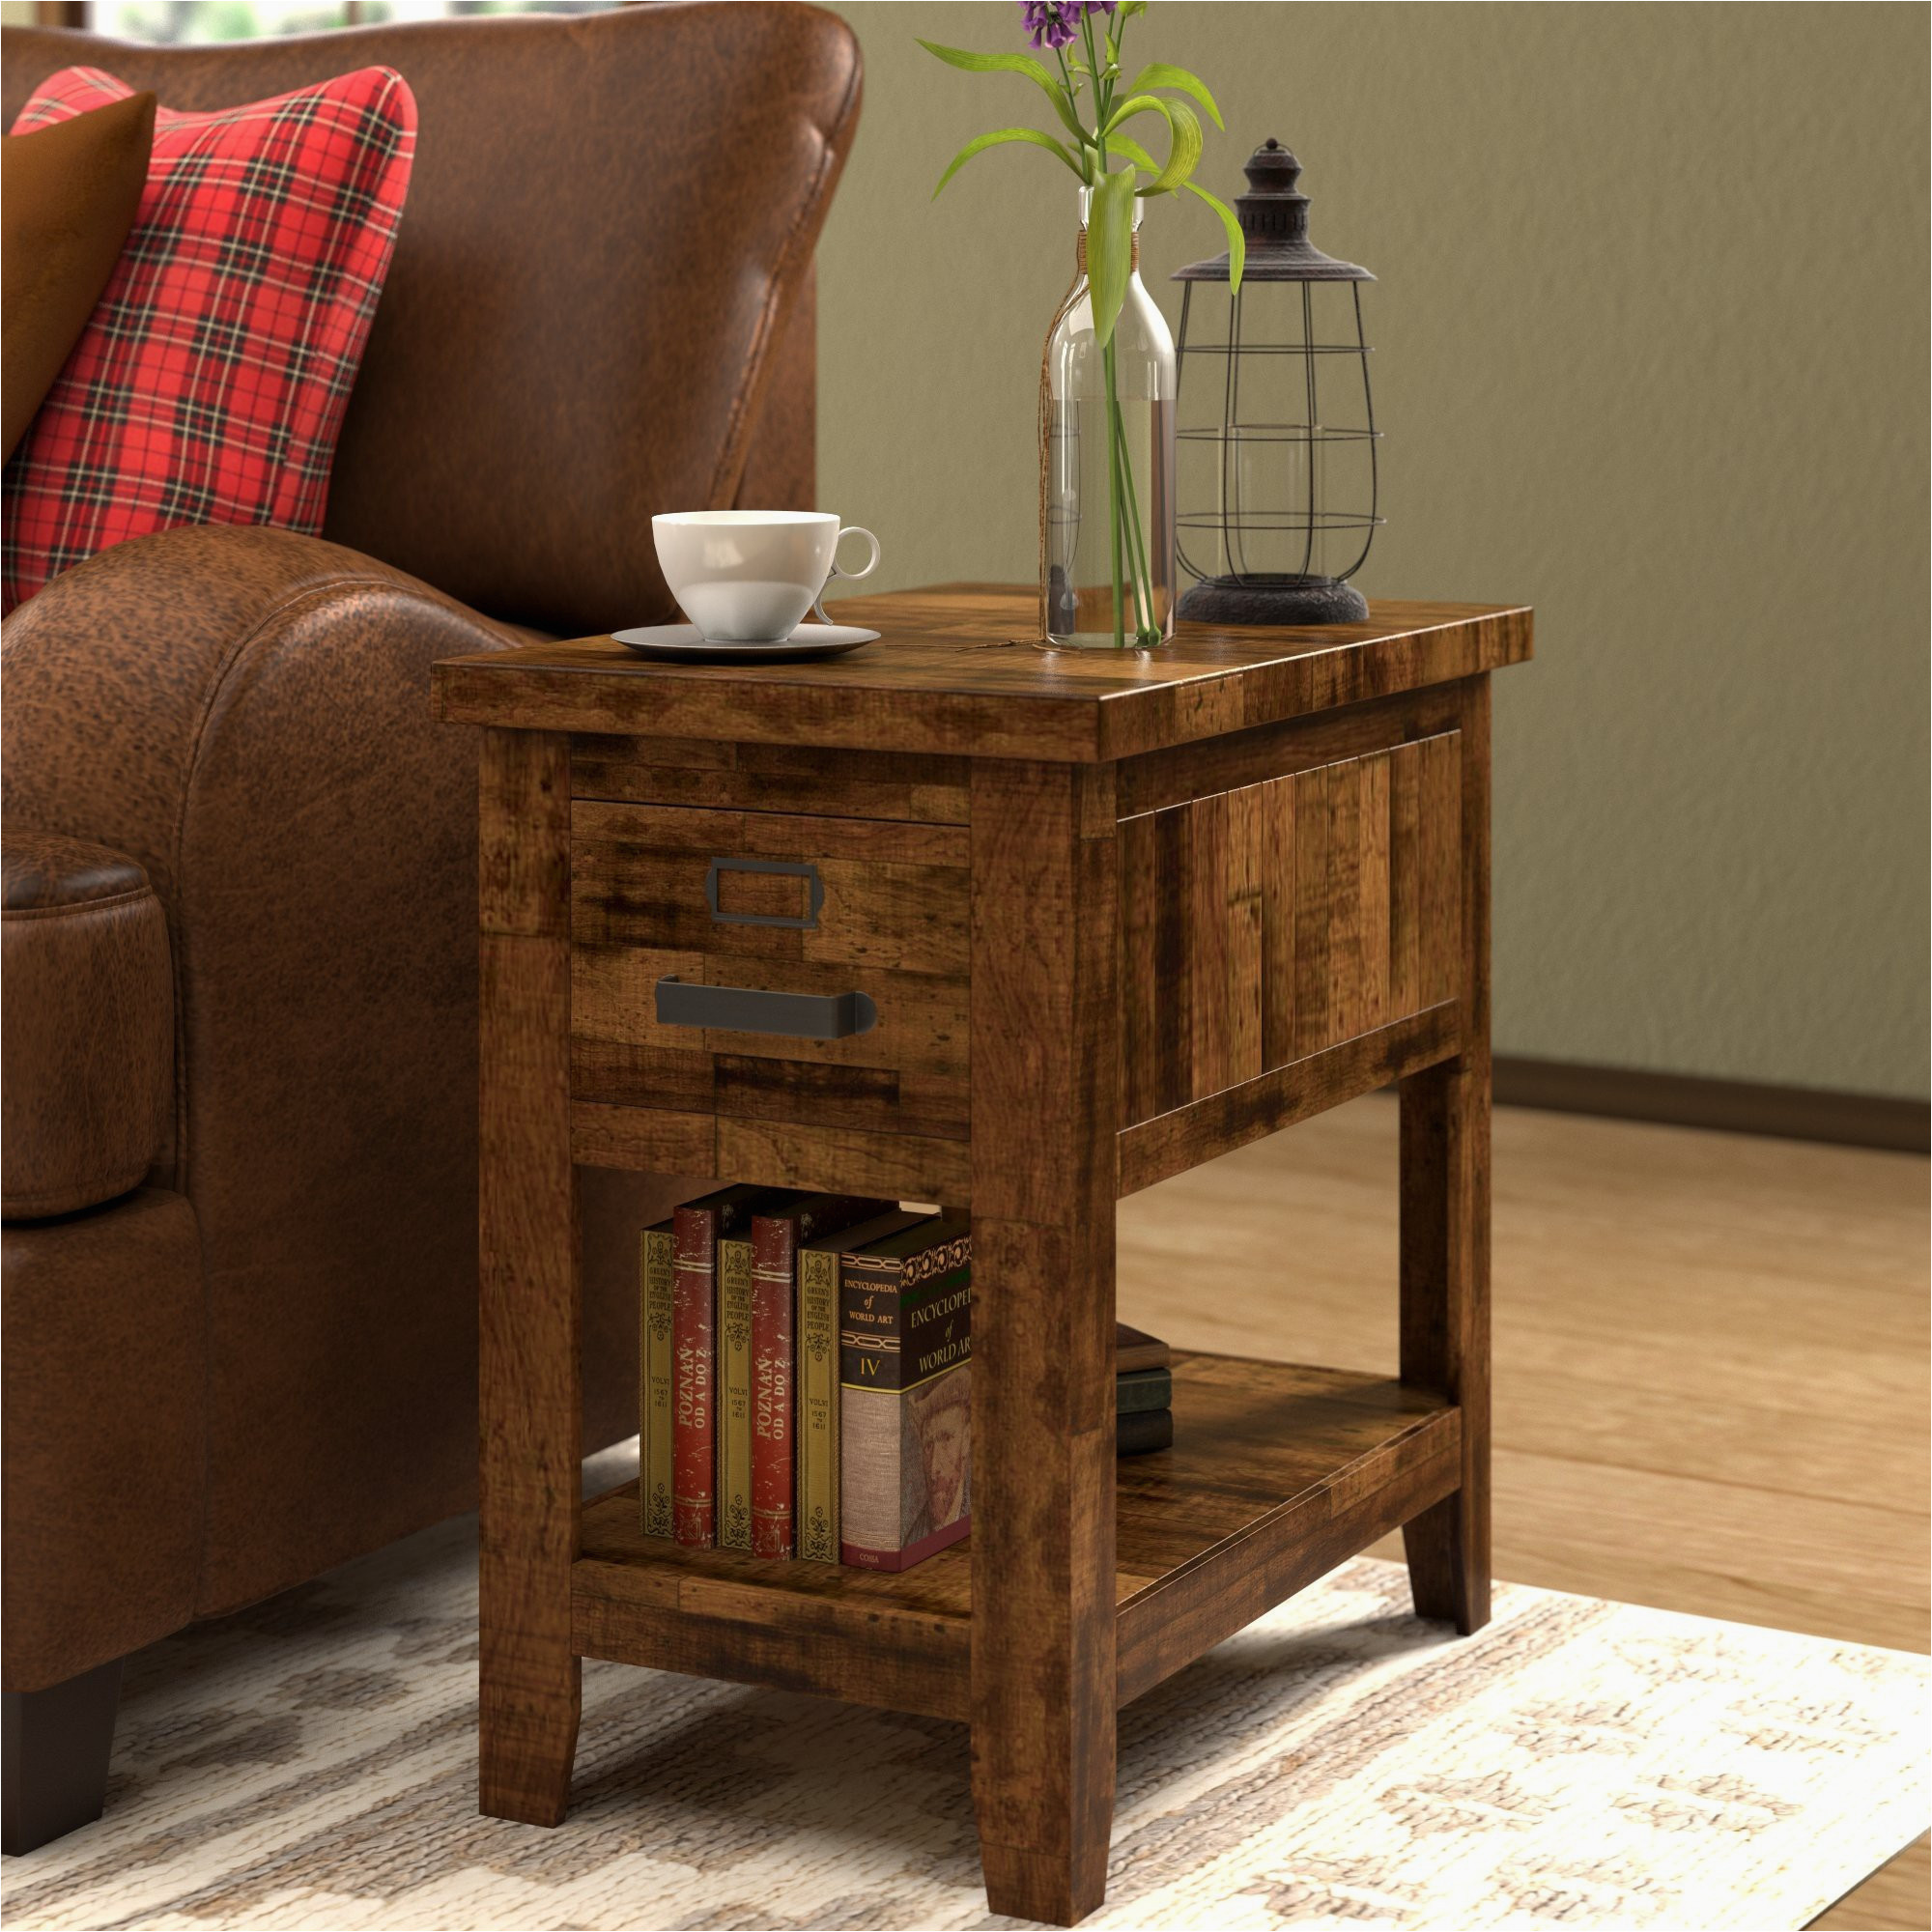 Desk Legs Home Depot Fascinating Metal Furniture Legs Home Depot In Iron Coffee Table